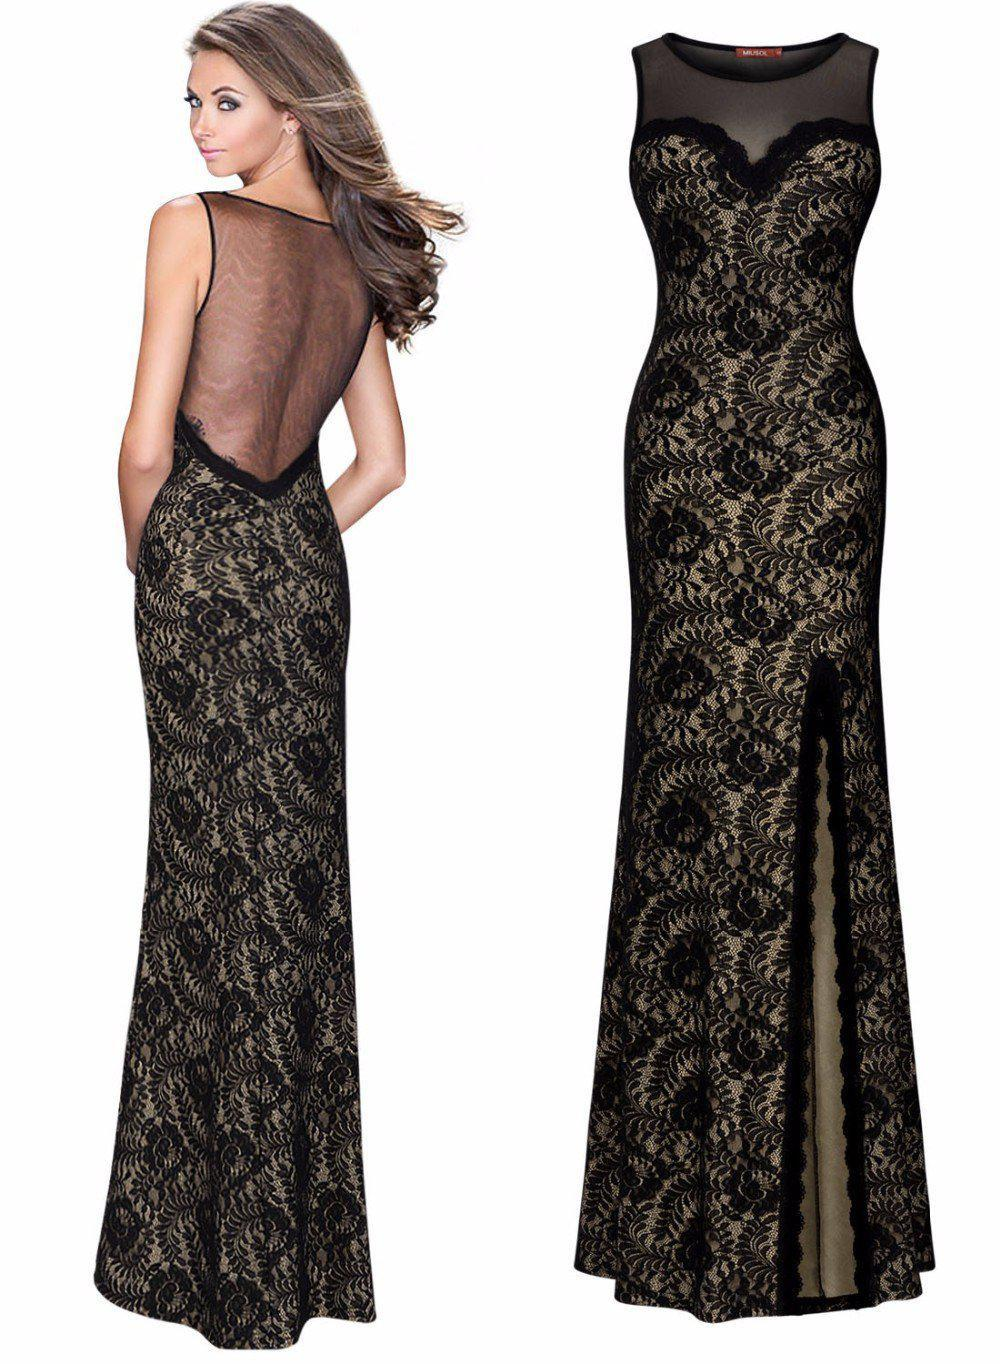 New Black Pearl Women Elegant Lace Stitching Sexy Split Slit Long Maxi Lace Patchwork Bodycon Formal Evening Party Club Dresses-Dress-SheSimplyShops